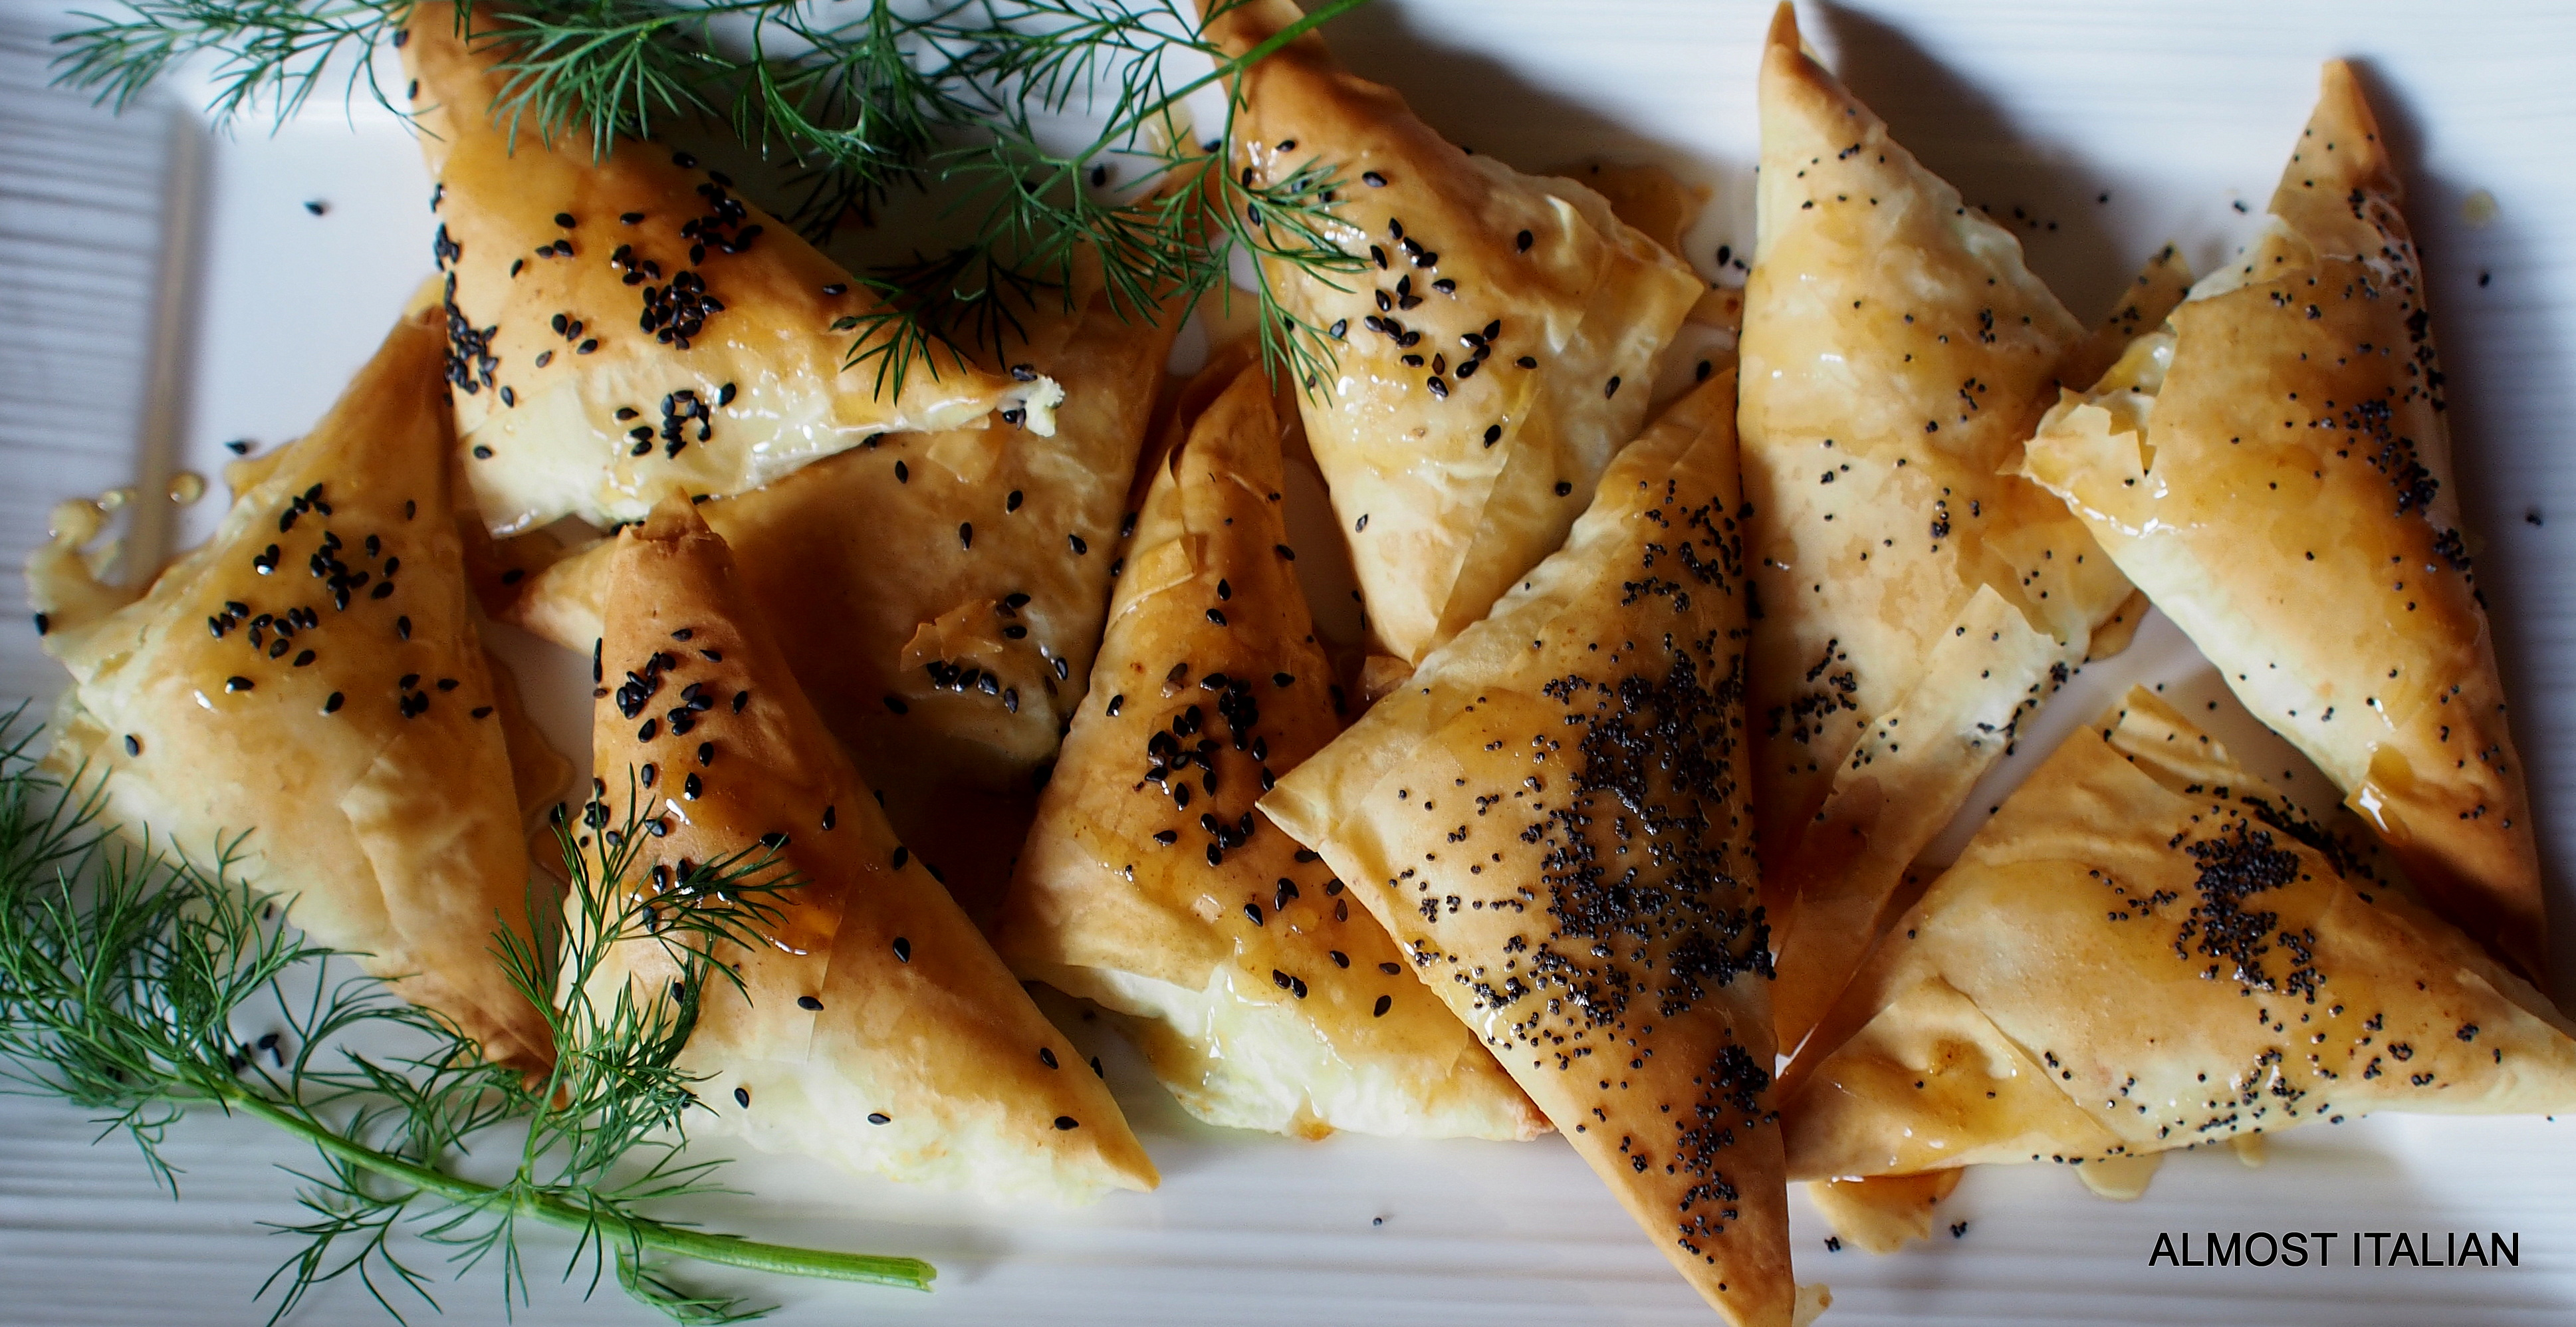 filo pastry with baked pumpkin, goats cheese, herbs, honey drizzle.